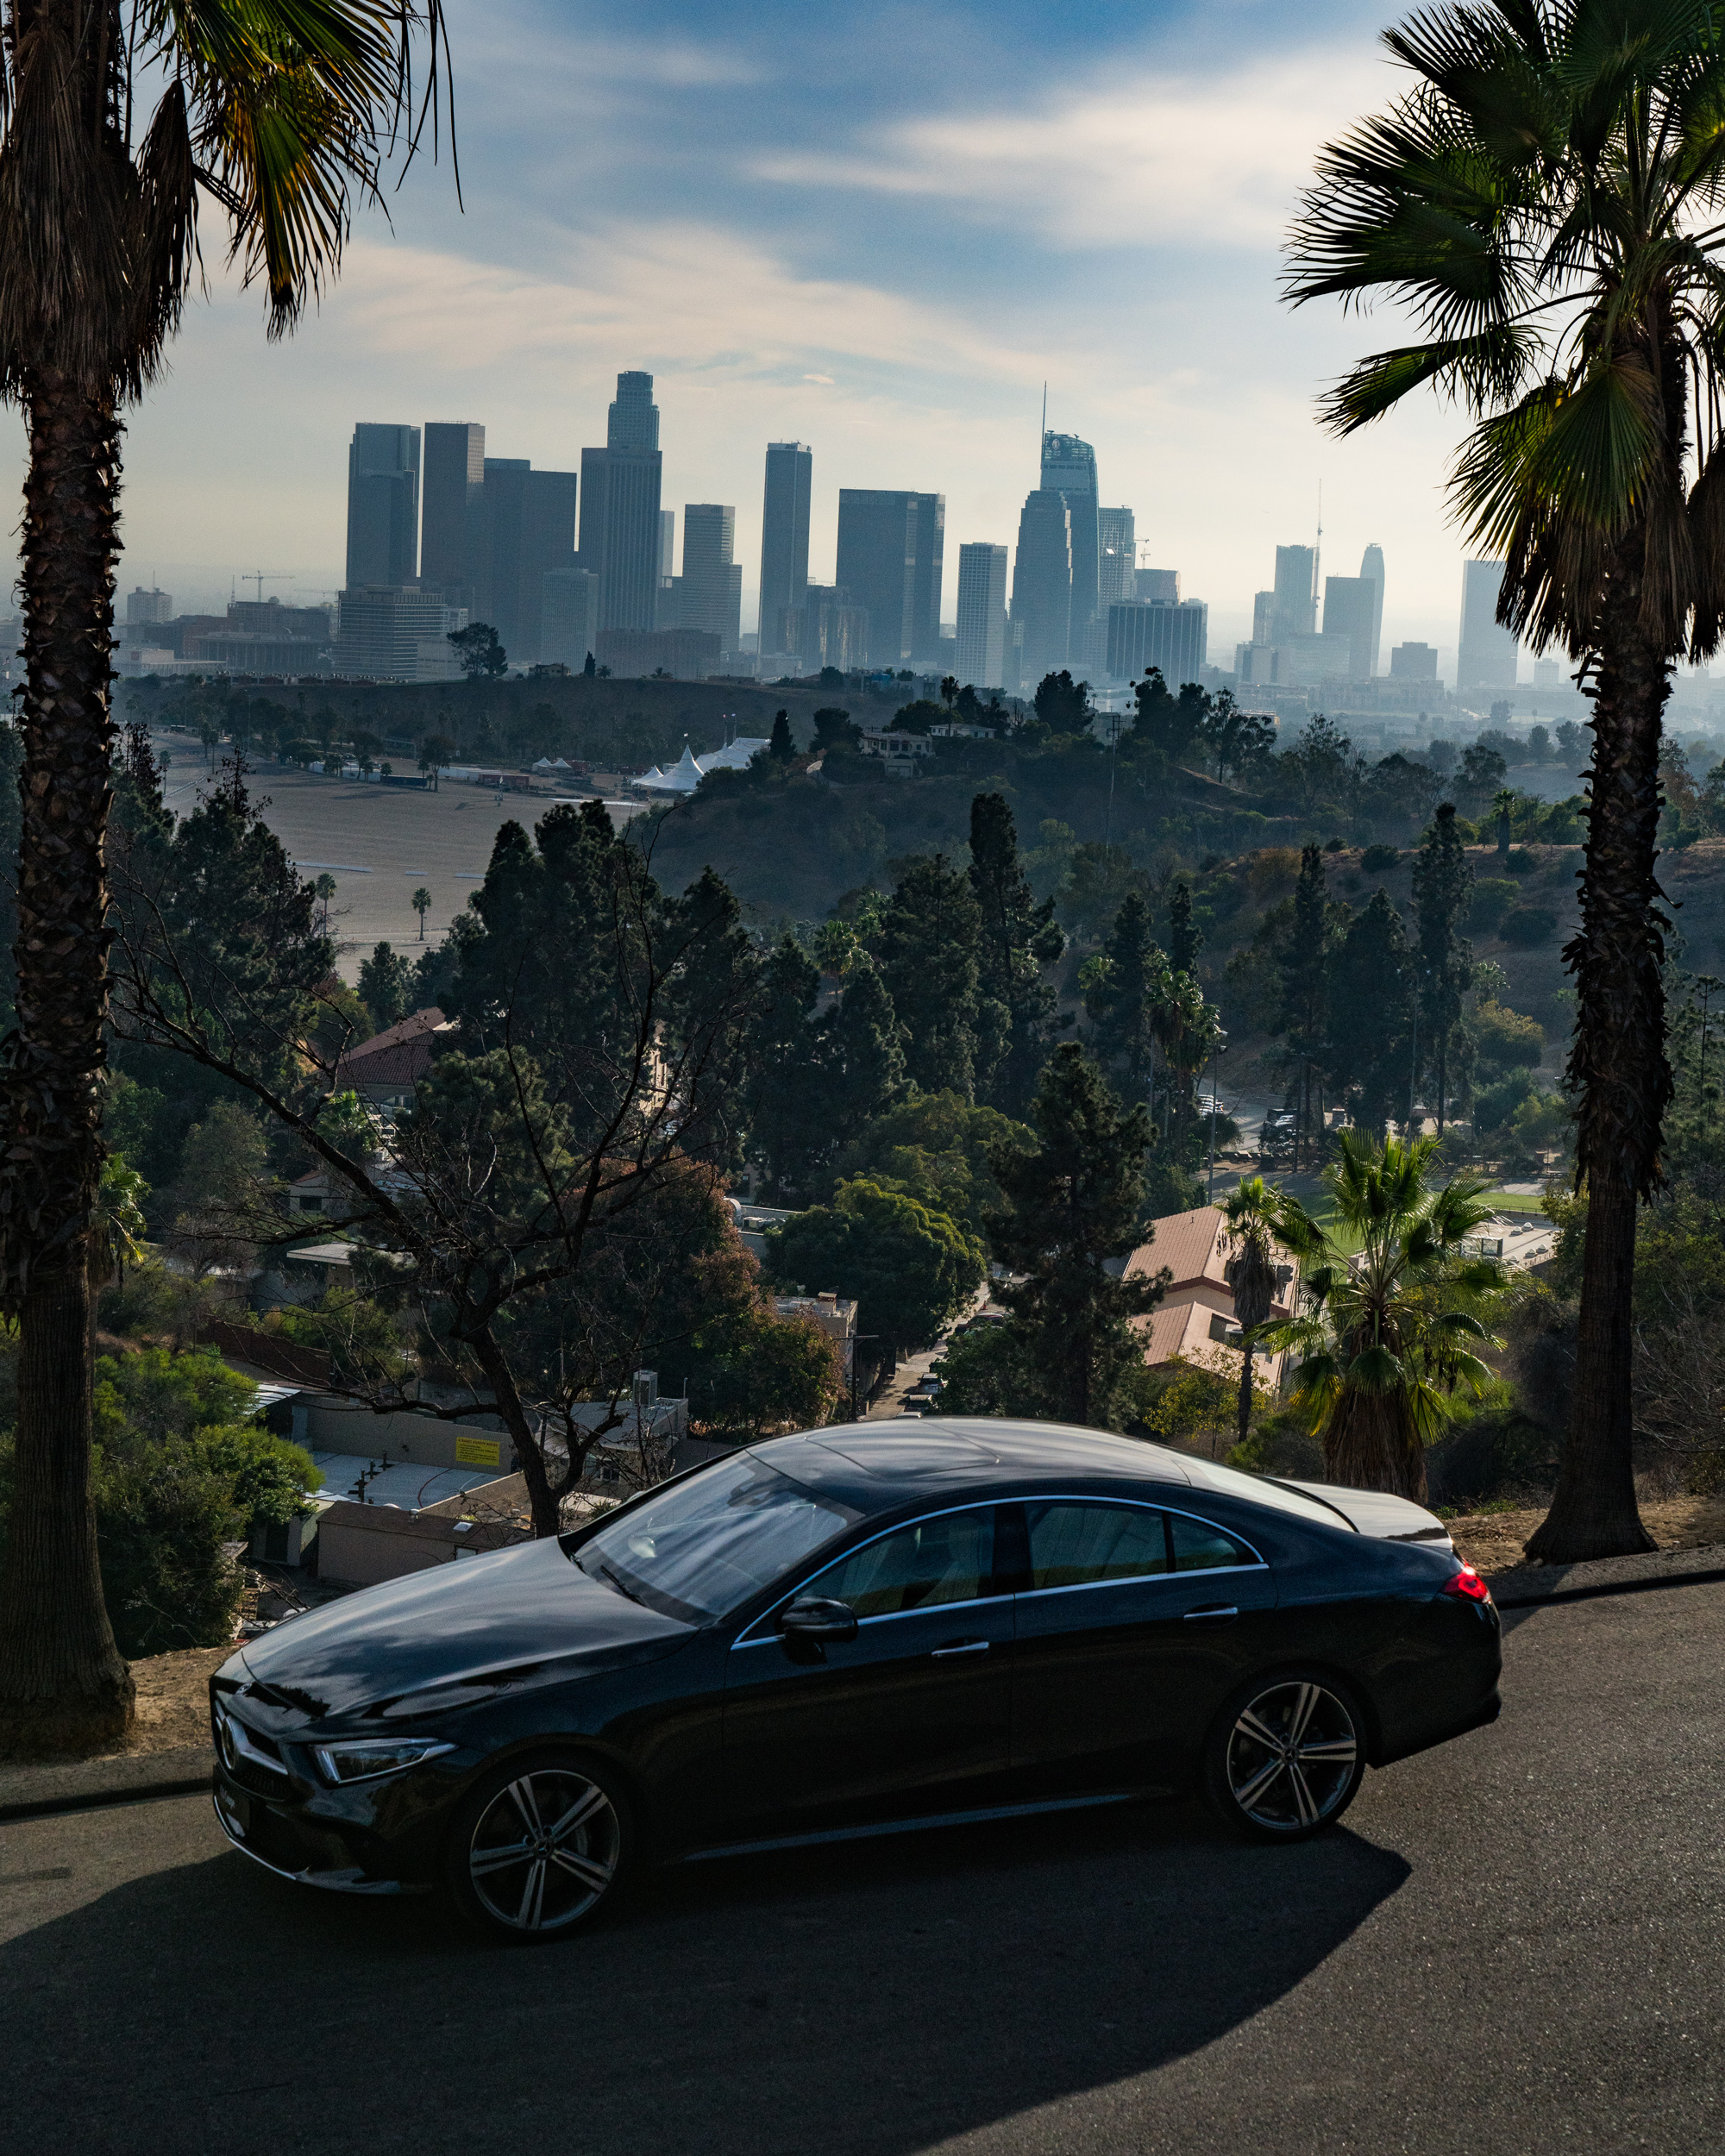 2019 Mercedes Benz Cls Class: 2019 Mercedes-Benz CLS-Class In Beverly Hills During L.A